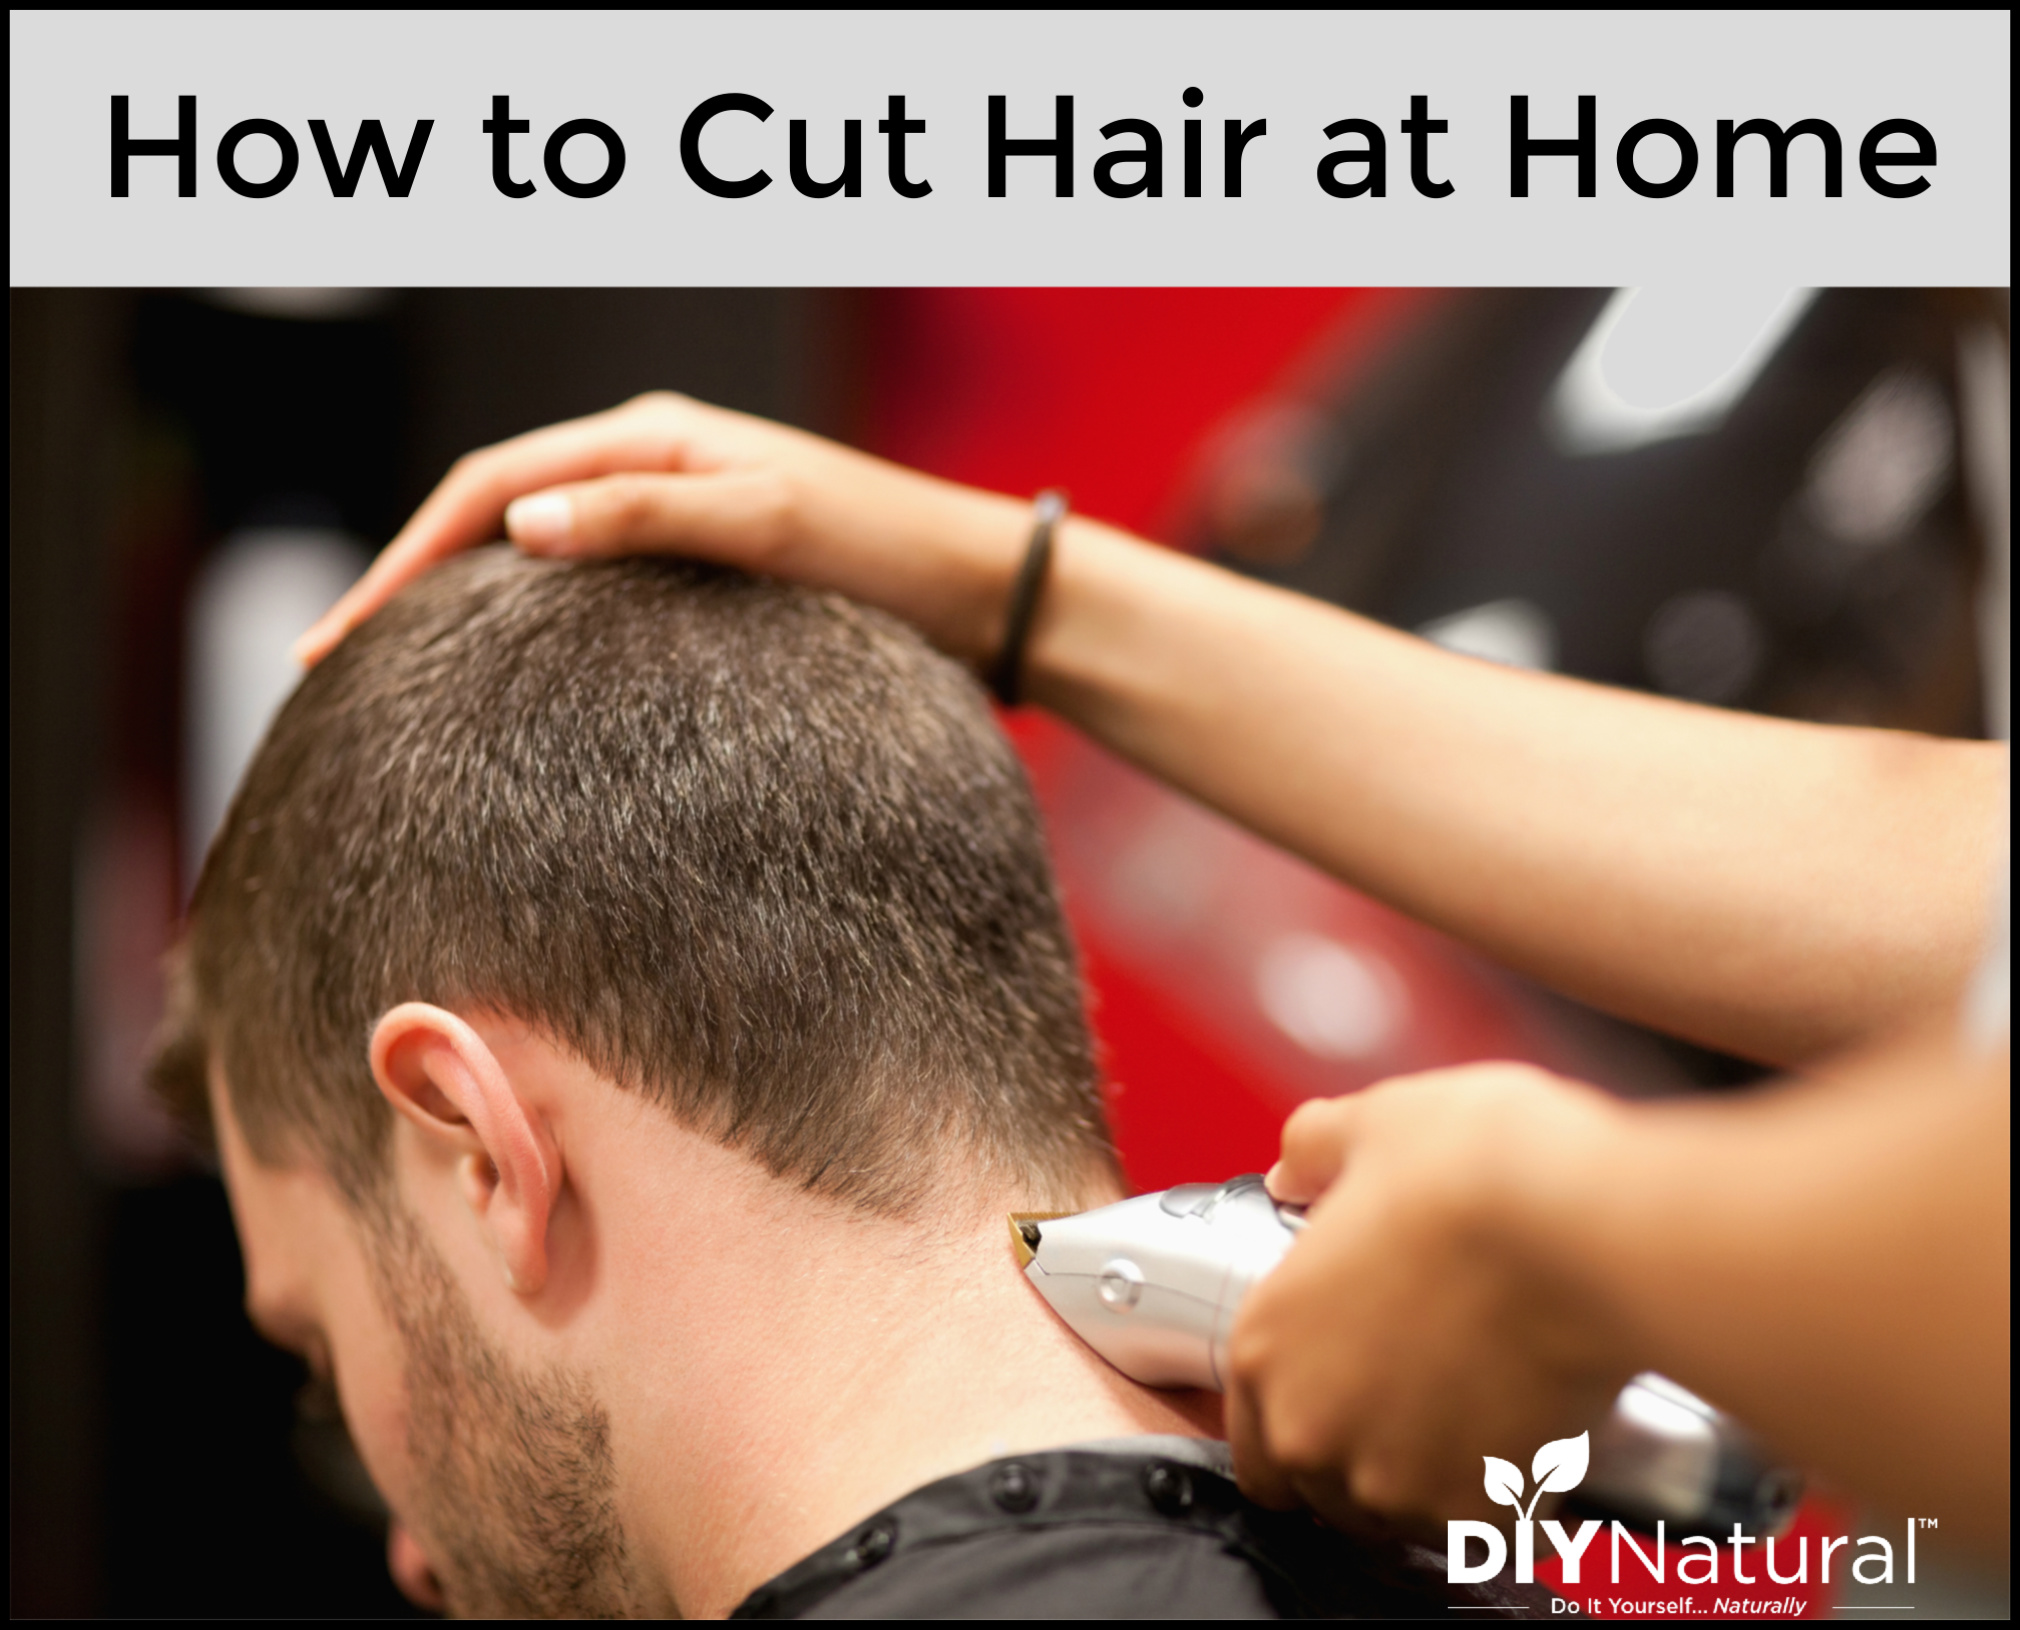 How to Cut Hair at Home: The DIY Hair Cut That Saves Us Money